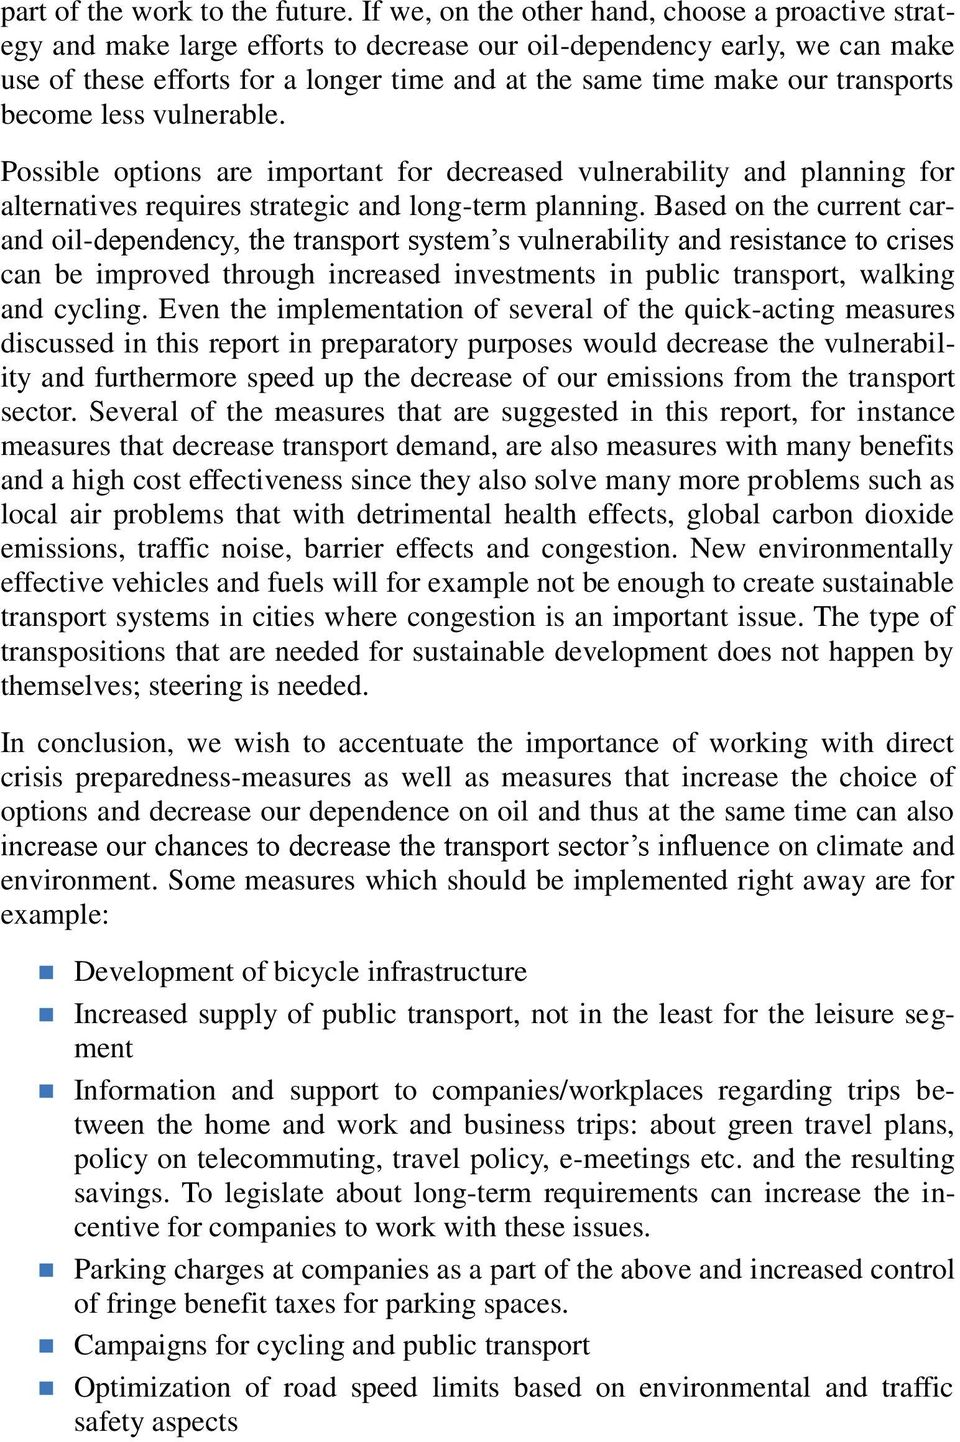 transports become less vulnerable. Possible options are important for decreased vulnerability and planning for alternatives requires strategic and long-term planning.